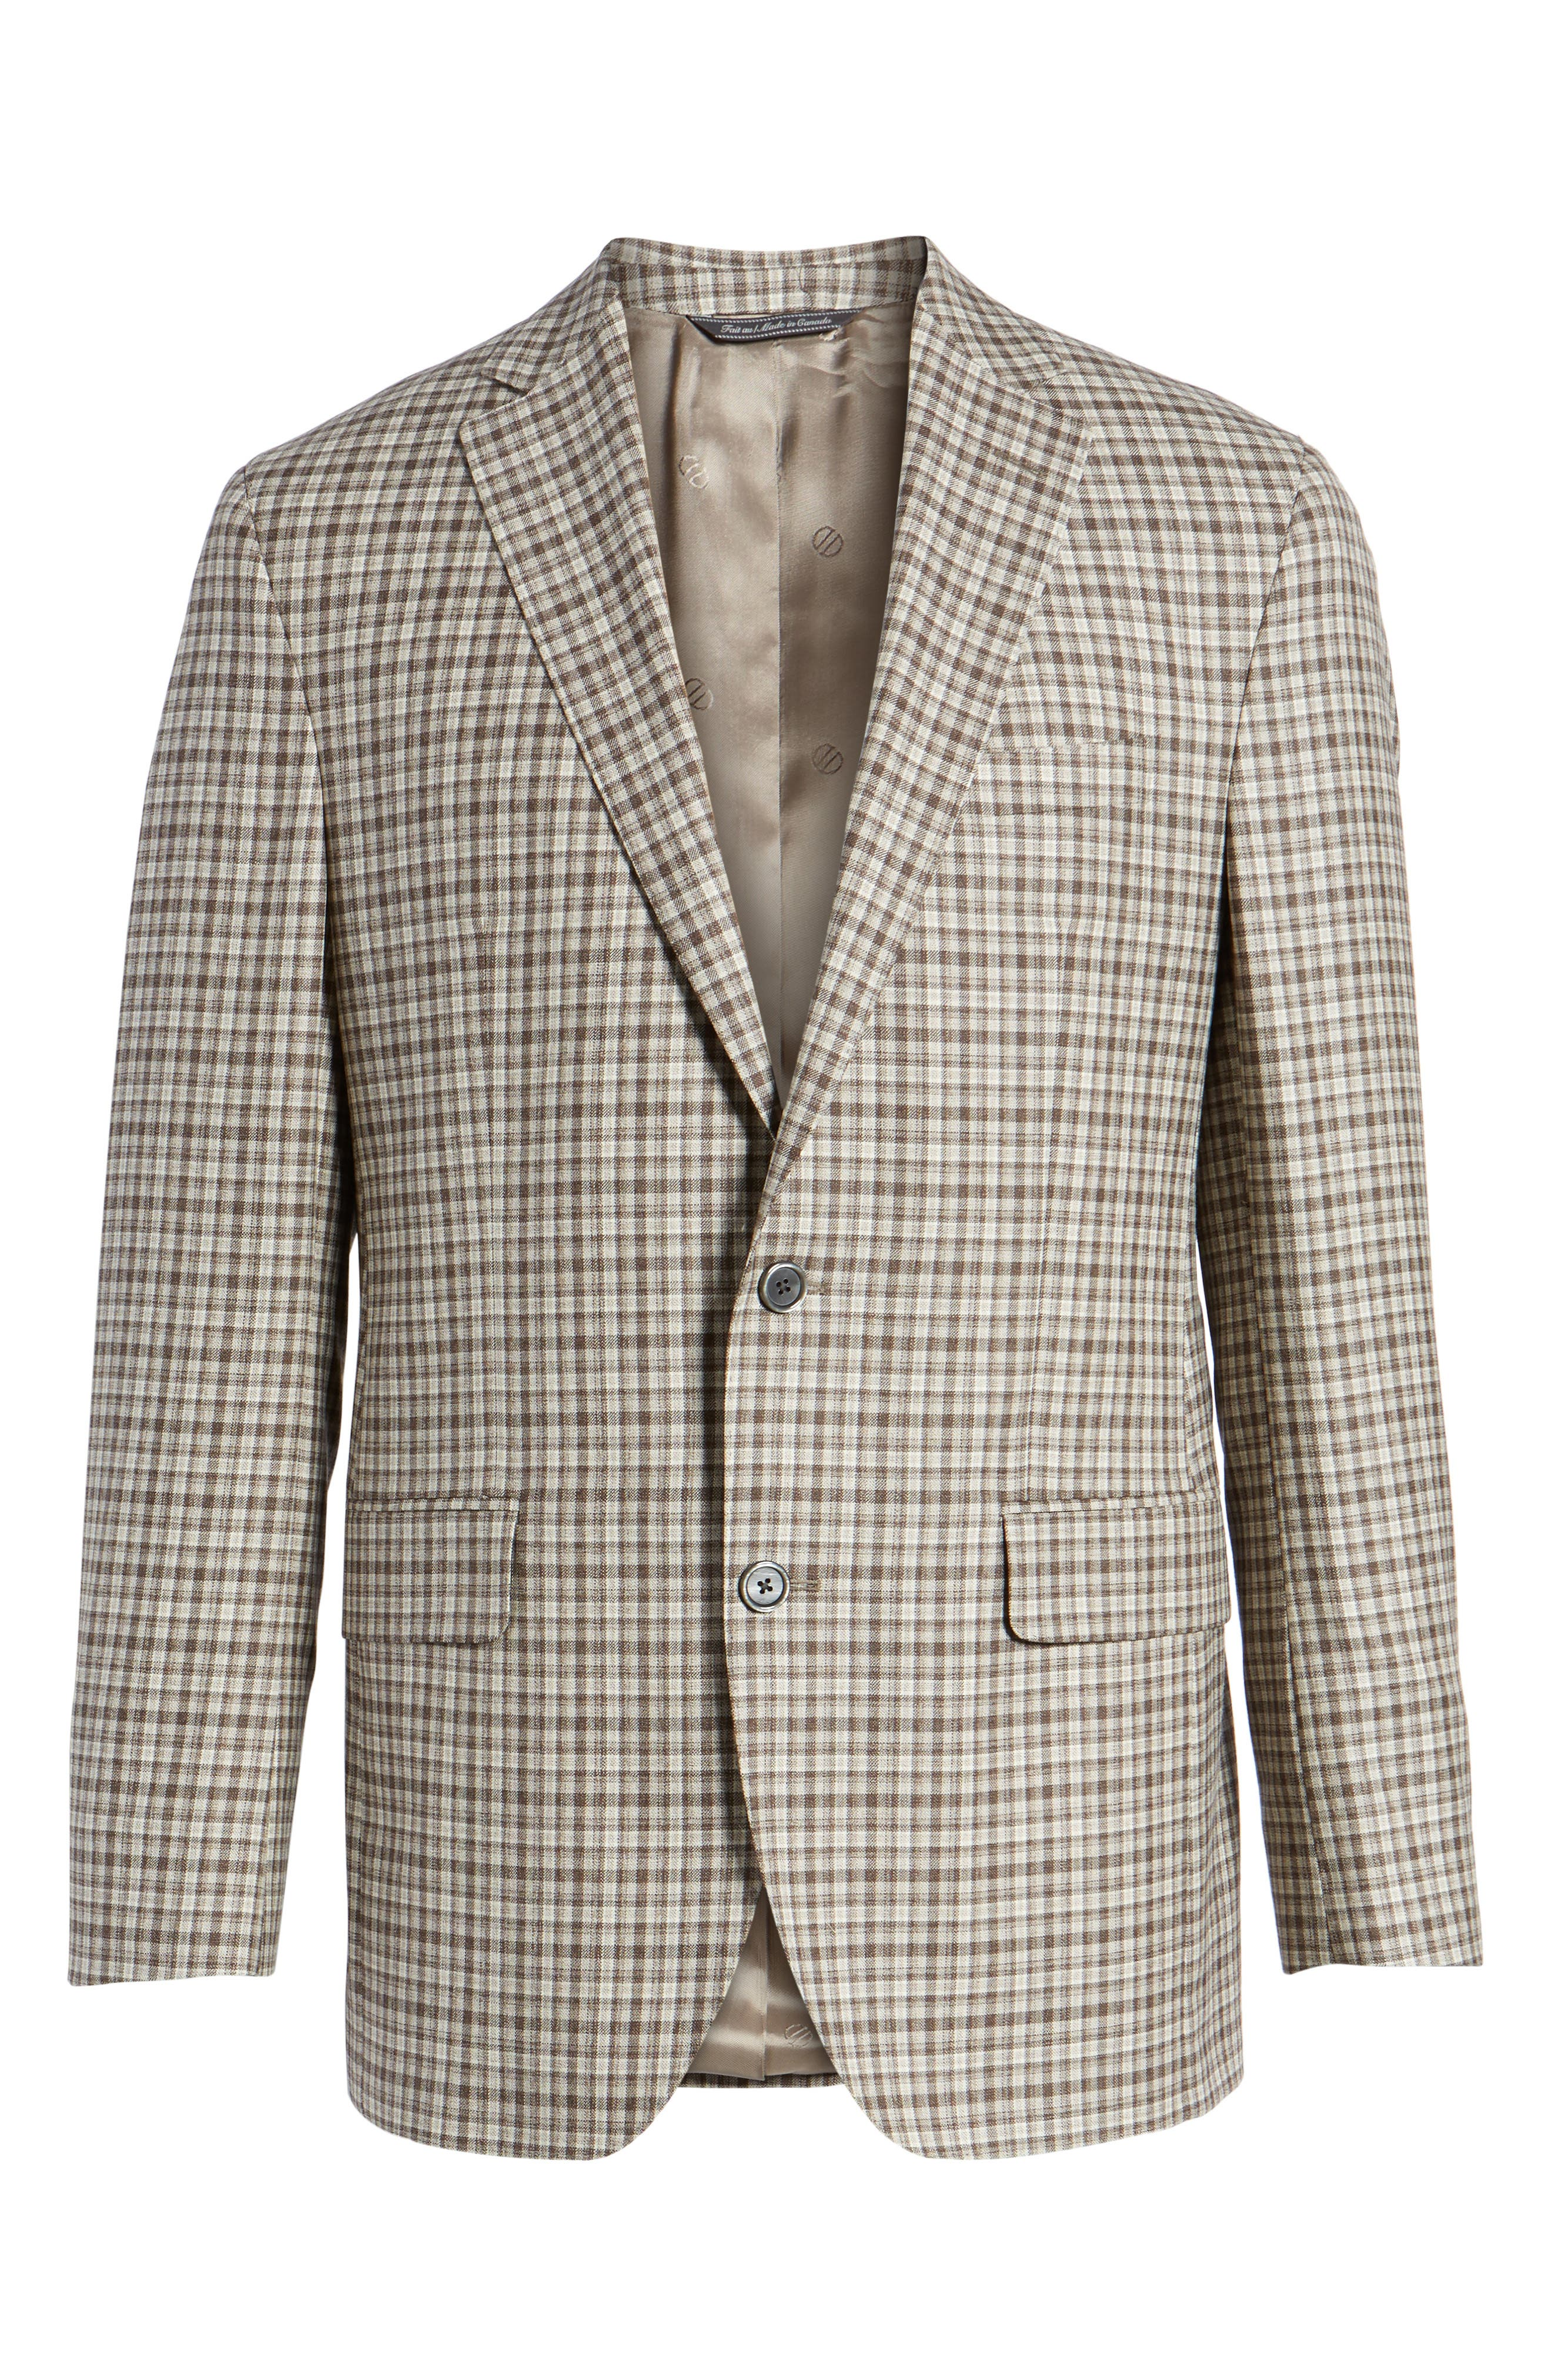 Arnold Classic Fit Plaid Wool Sport Coat,                             Alternate thumbnail 6, color,                             Brown